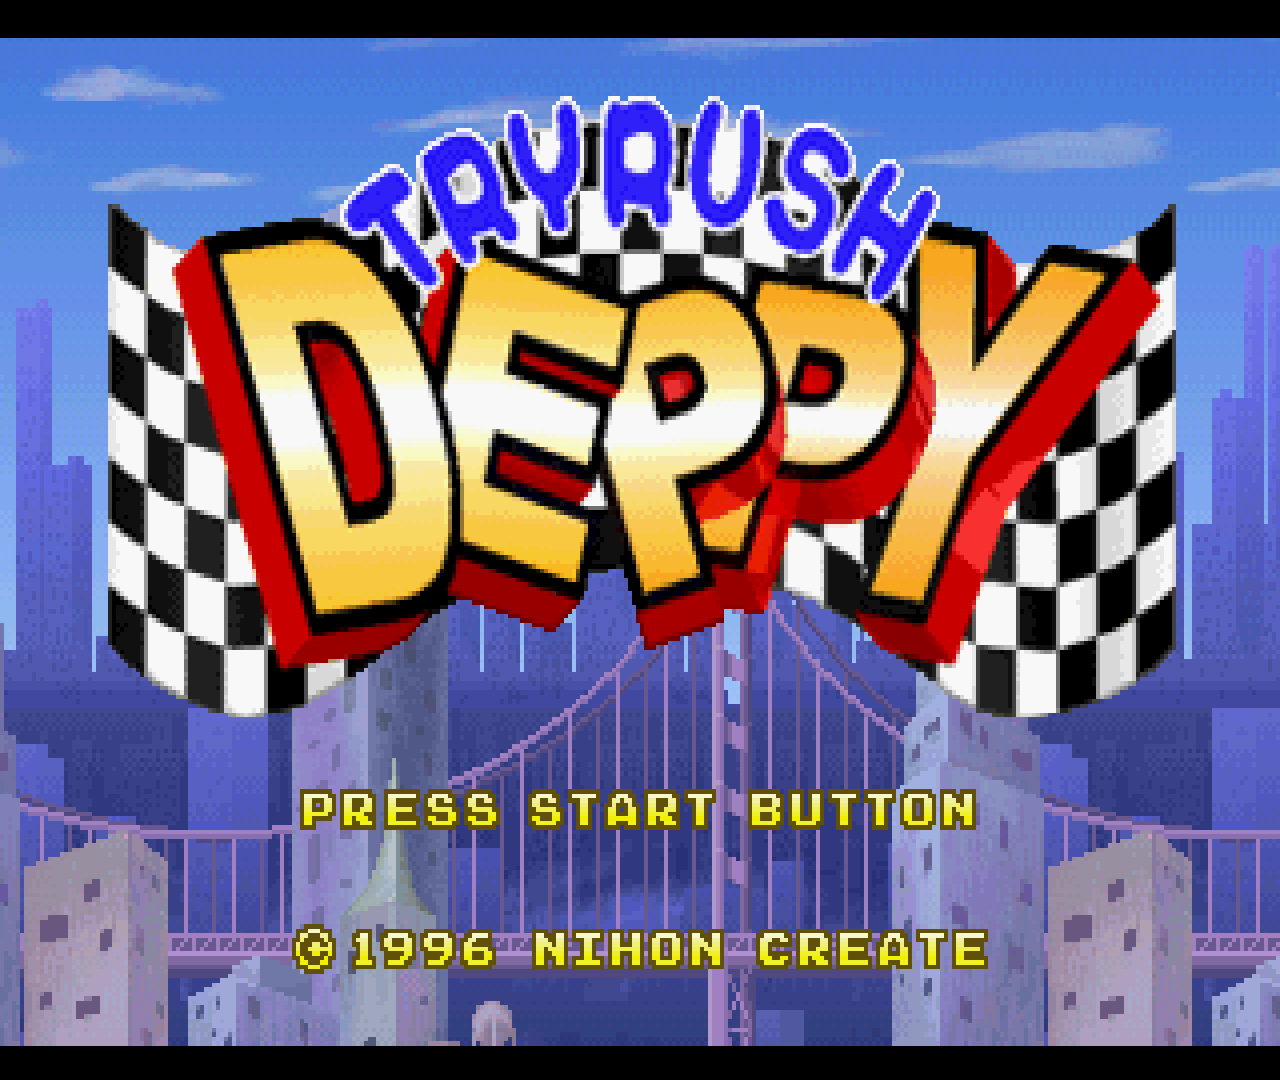 Figure 13 - Tryrush Deppy, one of the strangest games I've played so far